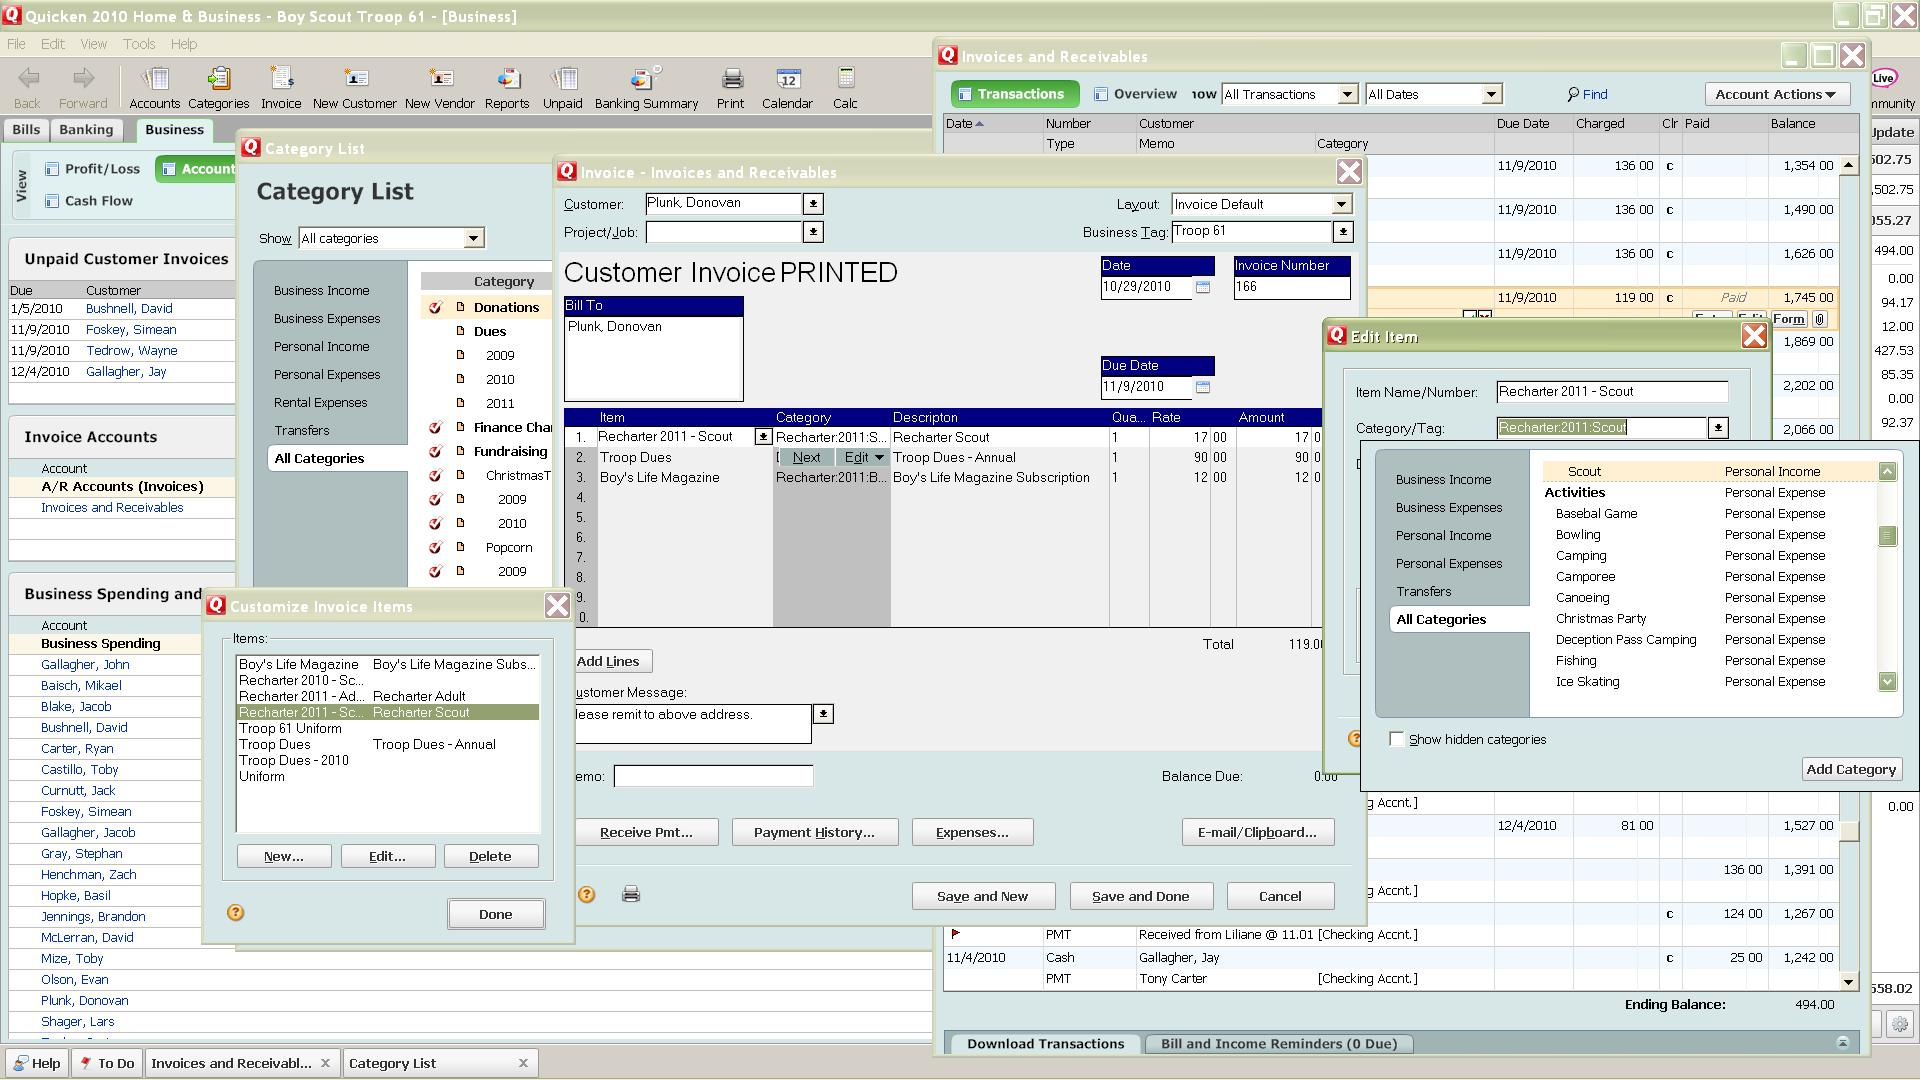 Intuit quicken 2010 home and business buy now